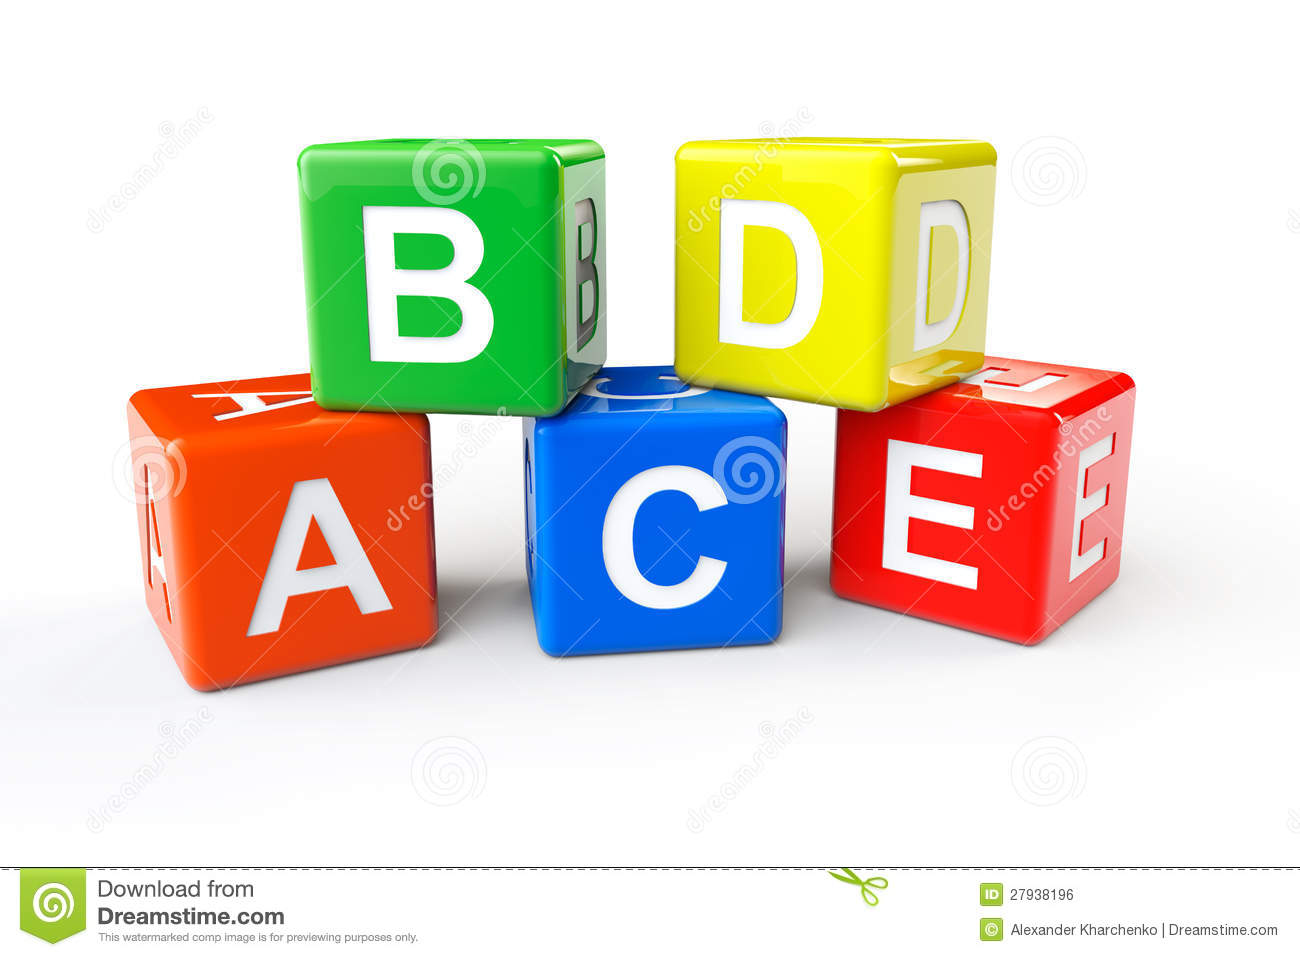 Stock Photo Video Surveillance Sign Image14511670 besides Lan  work moreover Royalty Free Stock Image Abcd Block Cubes Image27938196 further China Flag furthermore Arkham Asylum 2 Trailer Teases New Villains. on four square symbol